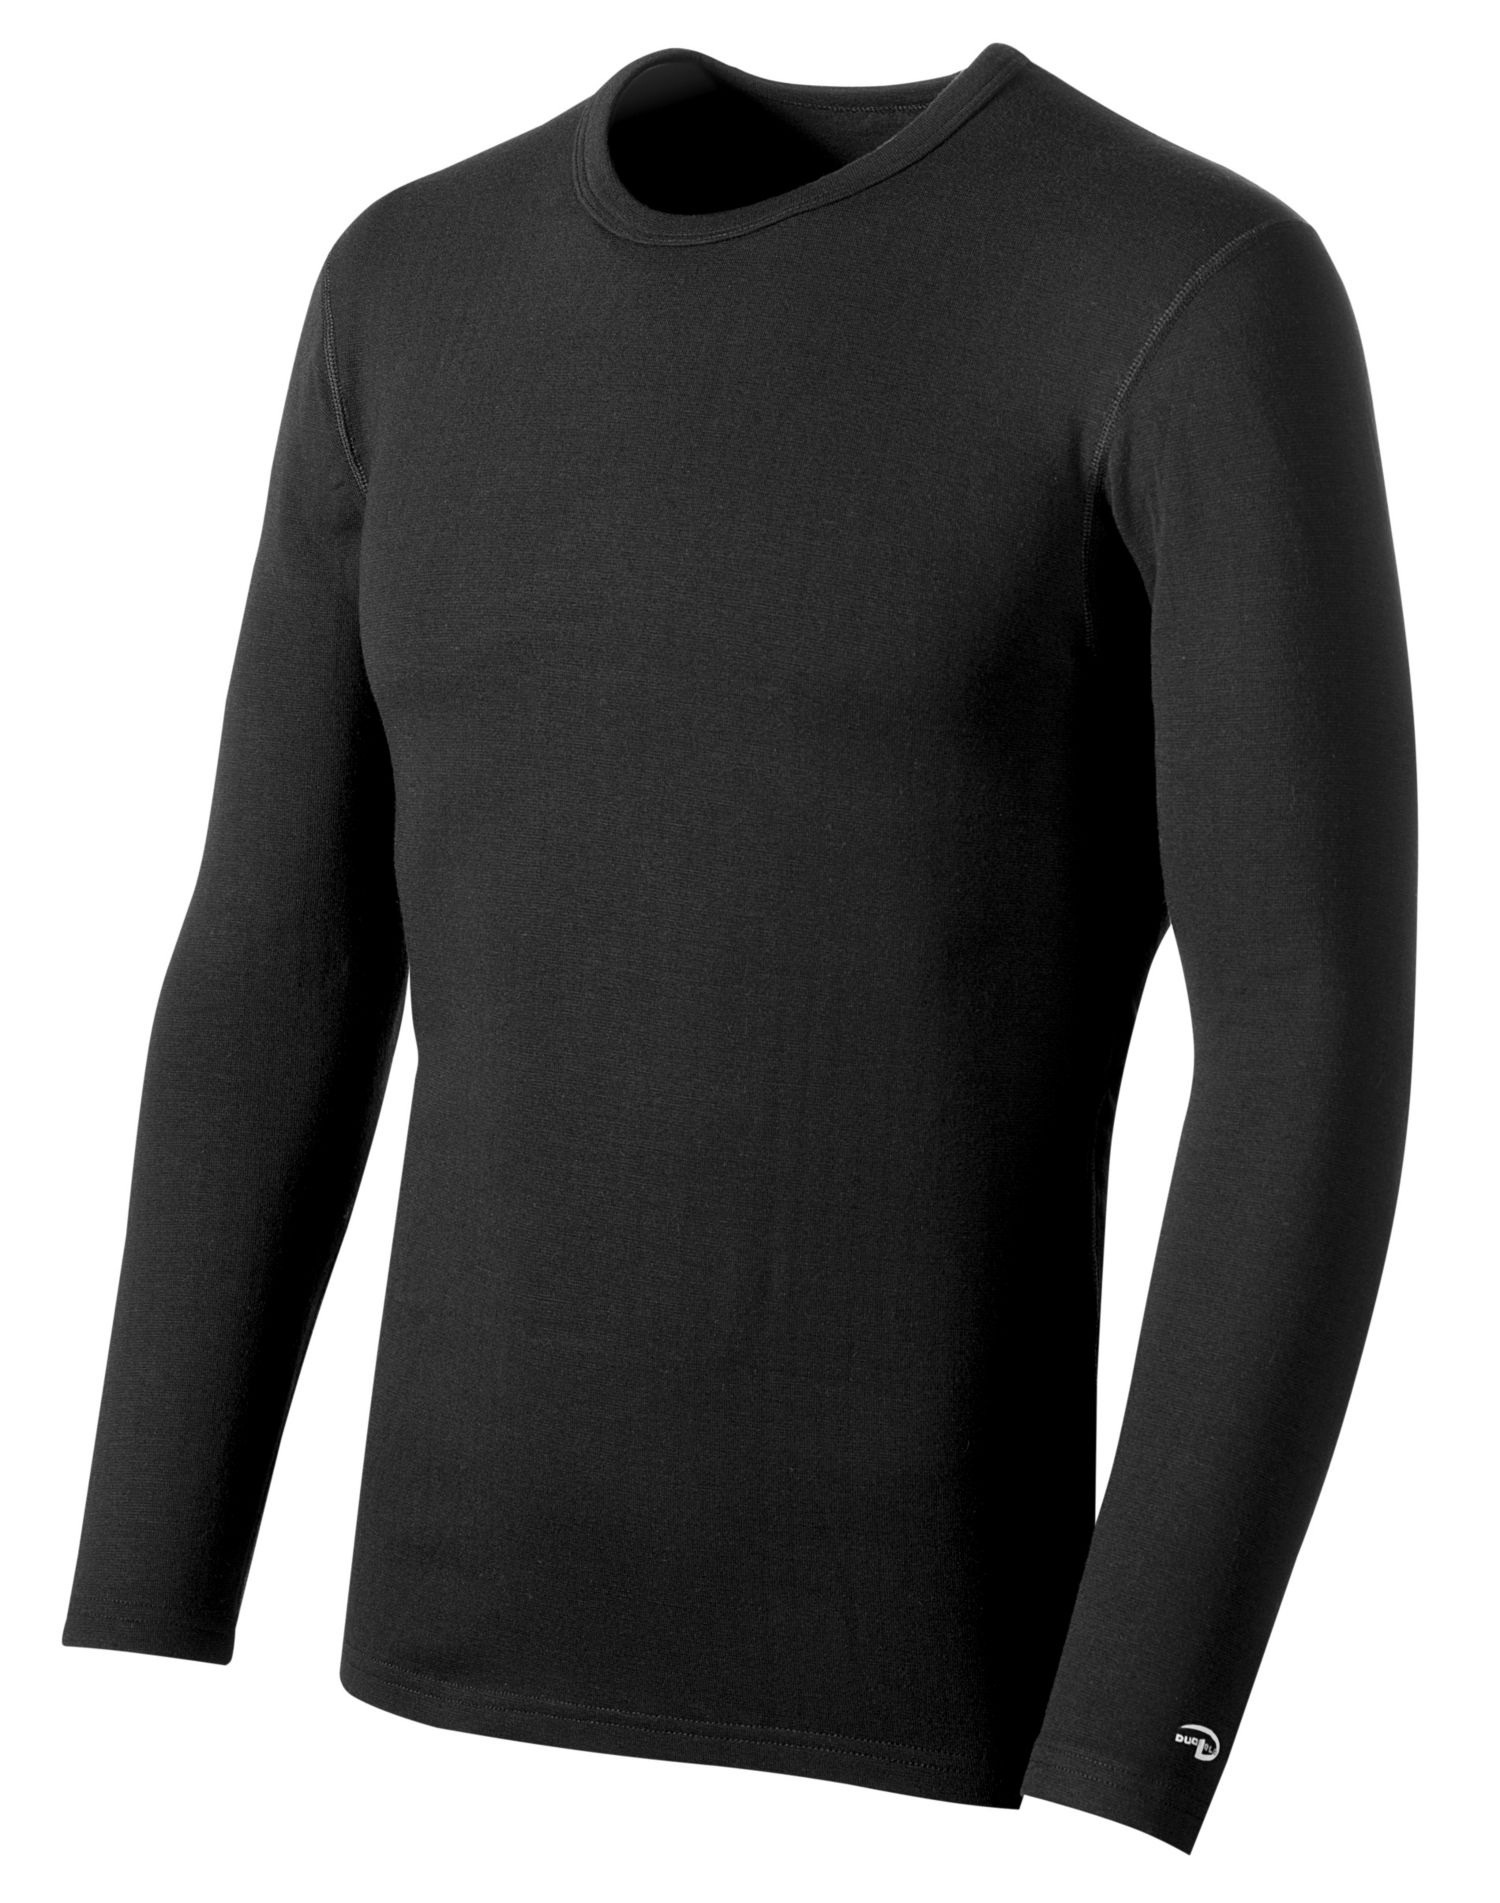 Duofold by champion varitherm performance 2 layer men 39 s for Mens black thermal t shirts